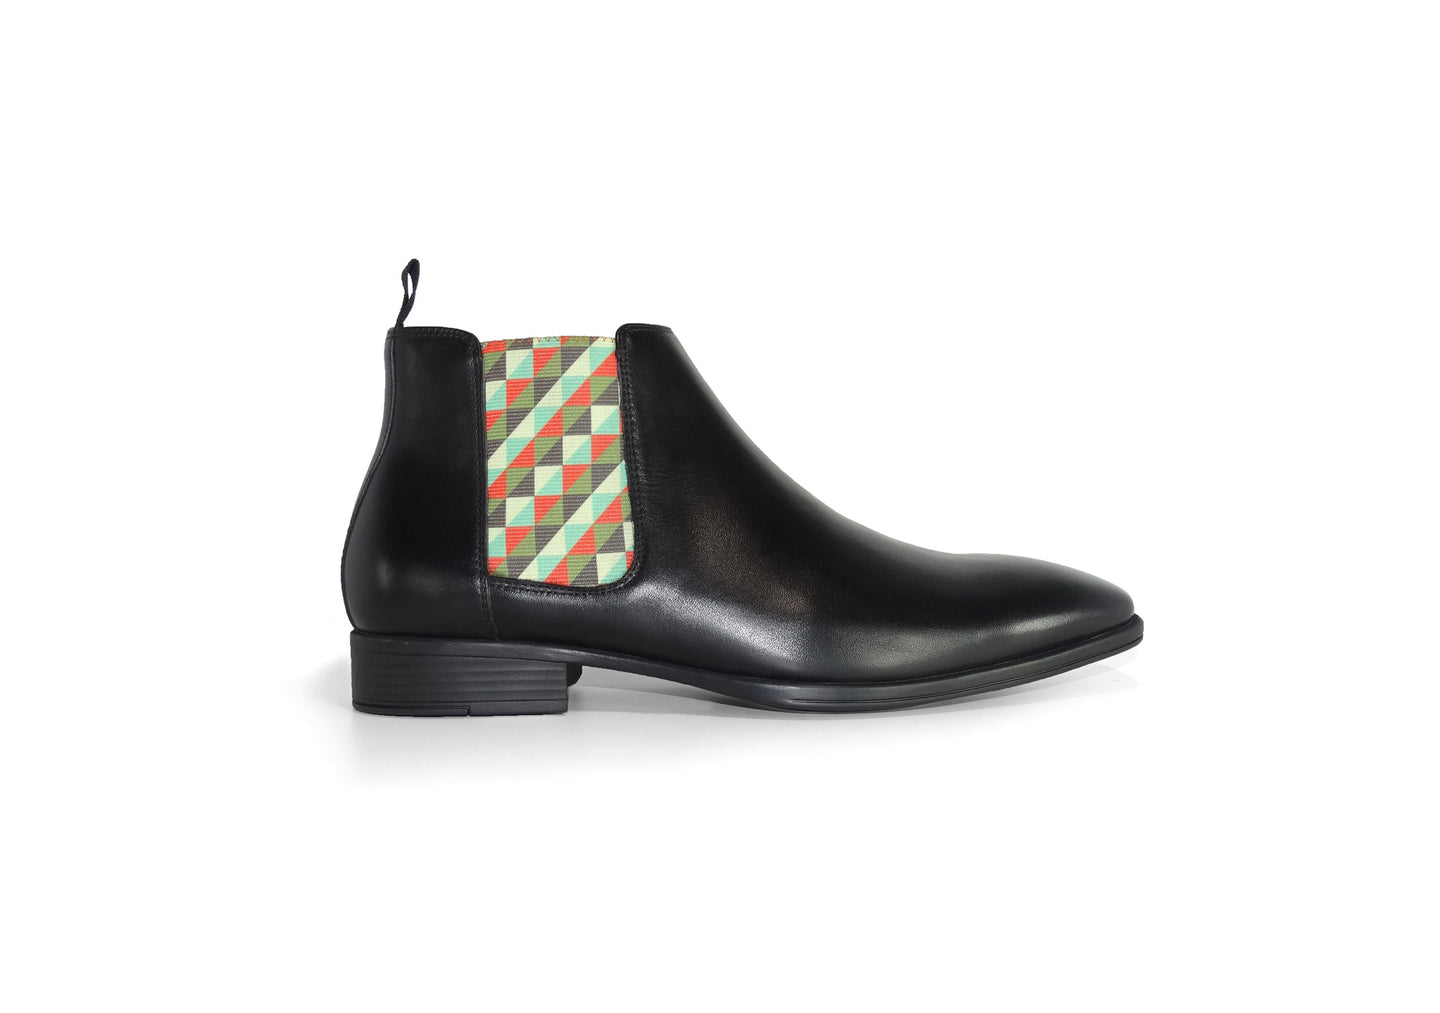 Chelsea Boots - Men's High Cut - Isometric